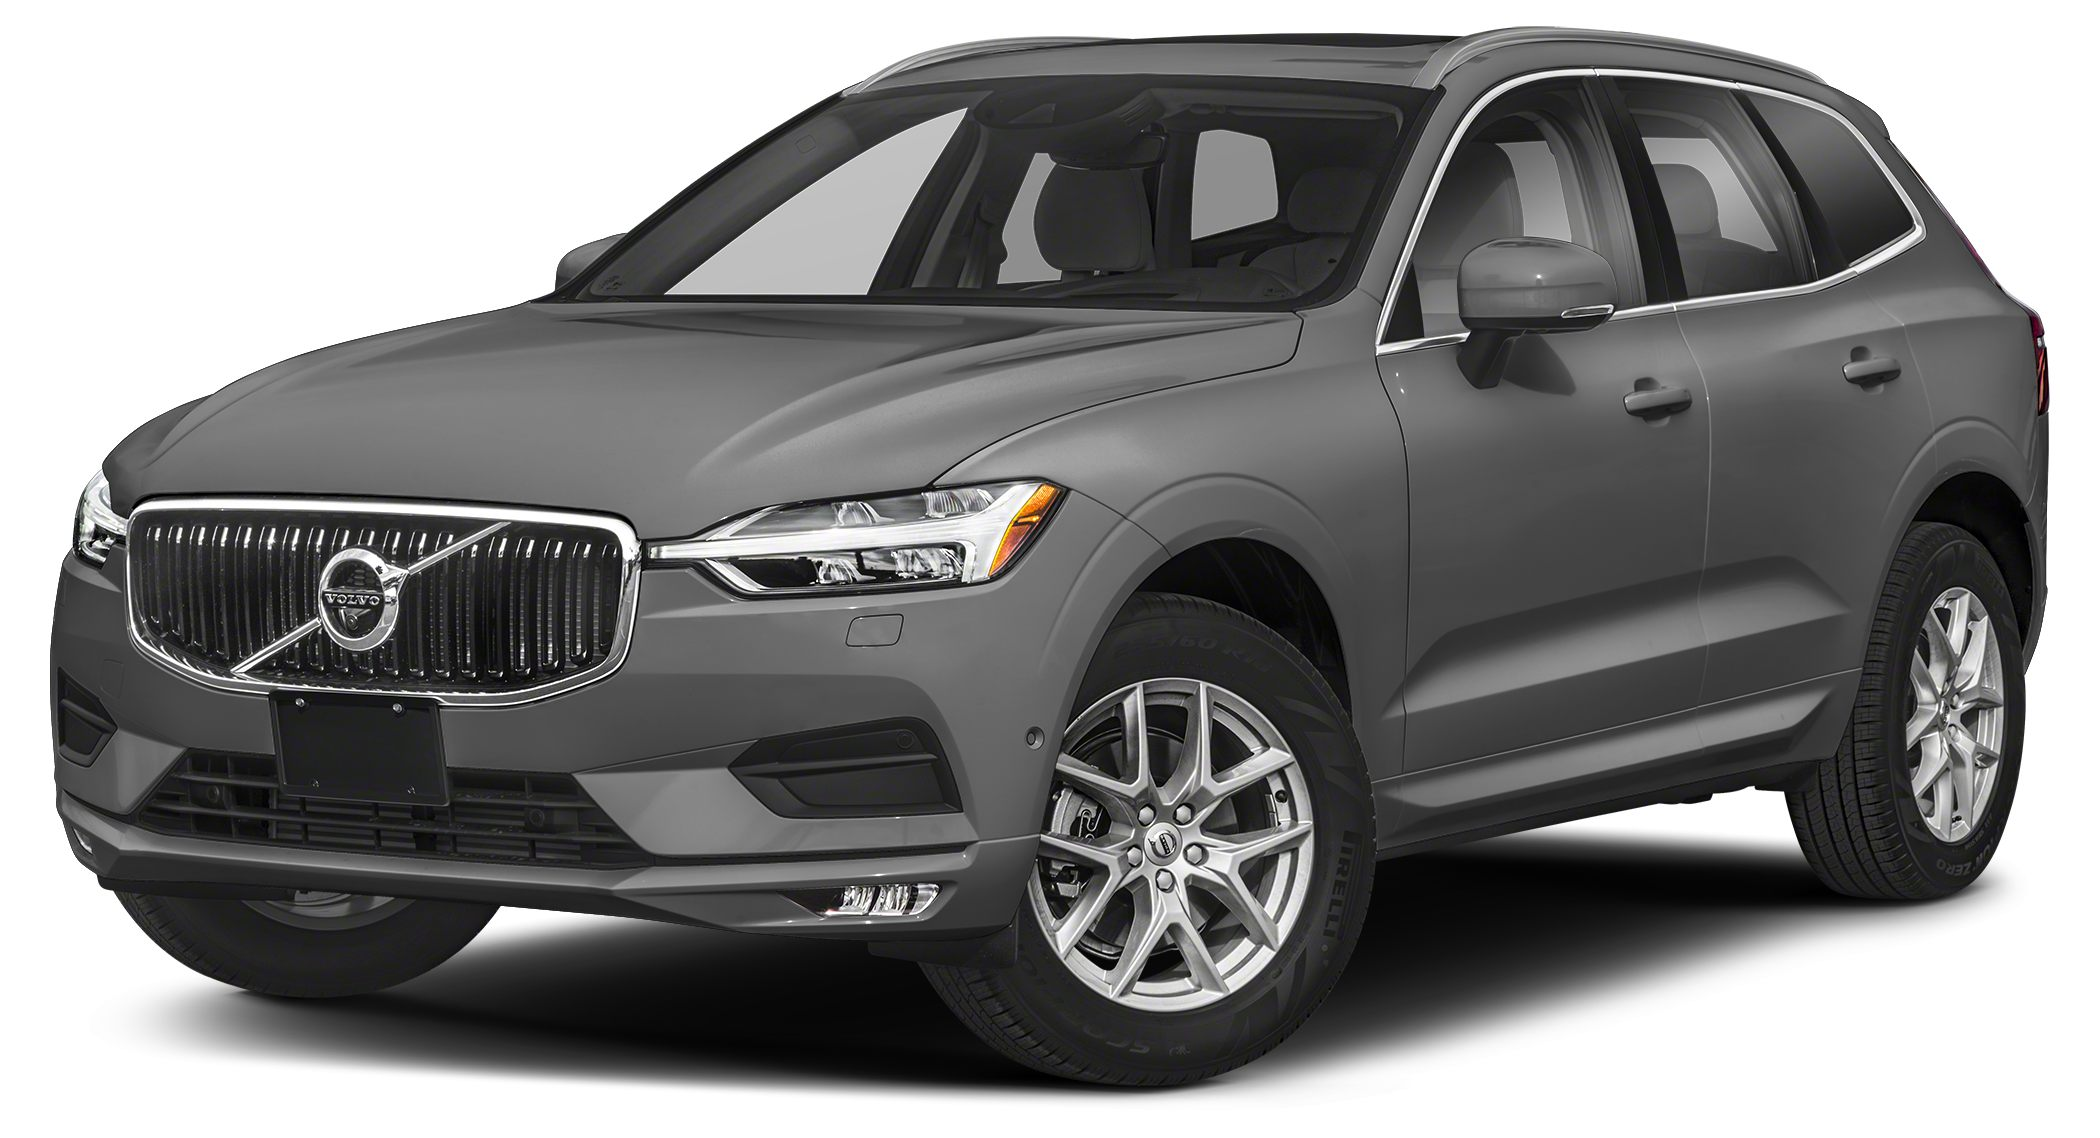 2018 Volvo XC60 T6 Inscription Safety equipment includes ABS Traction control Curtain airbags